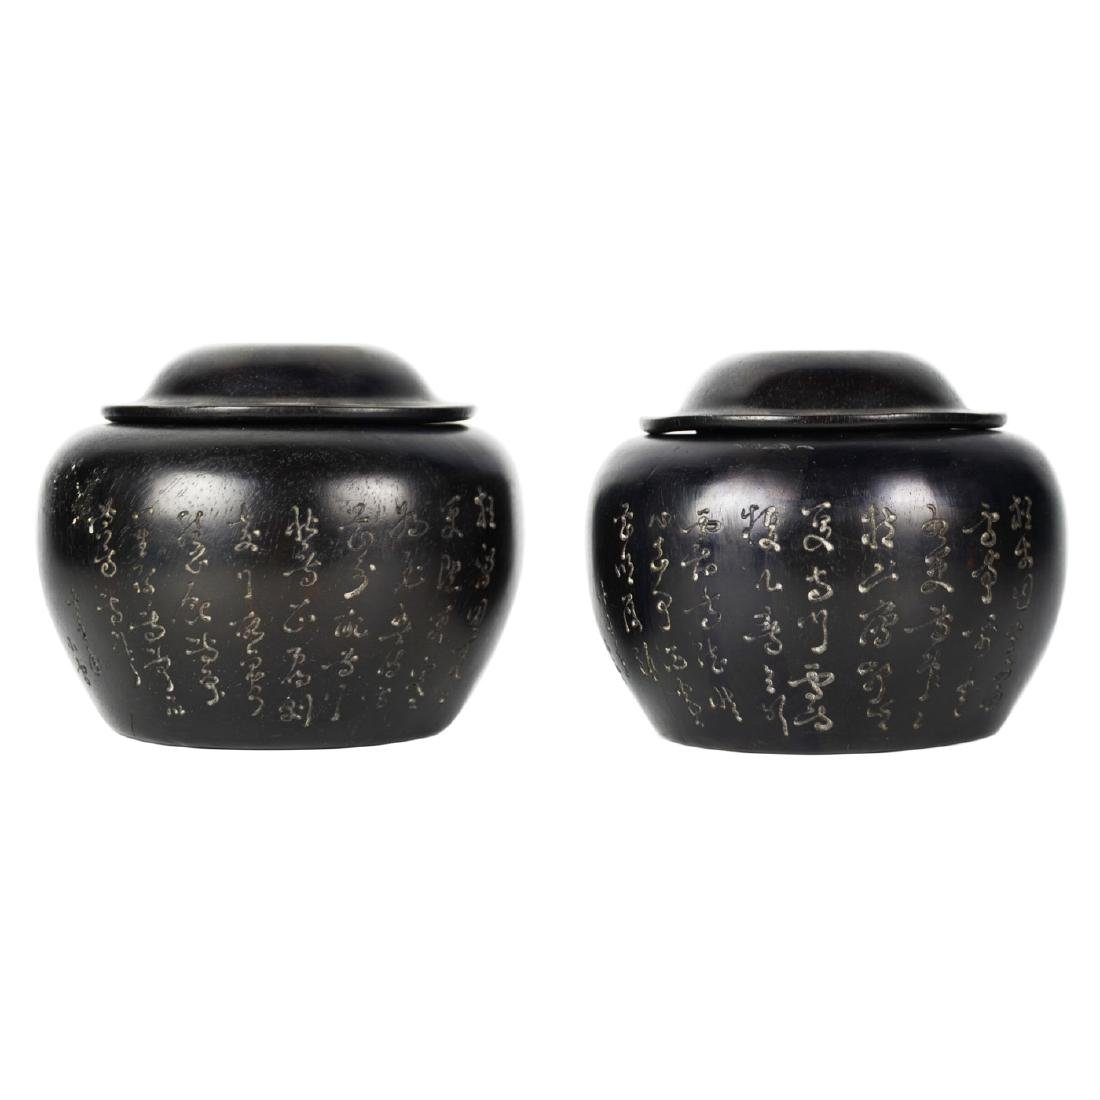 A Pair of Zitan Poem Inscriptions Chess Jar with Cover